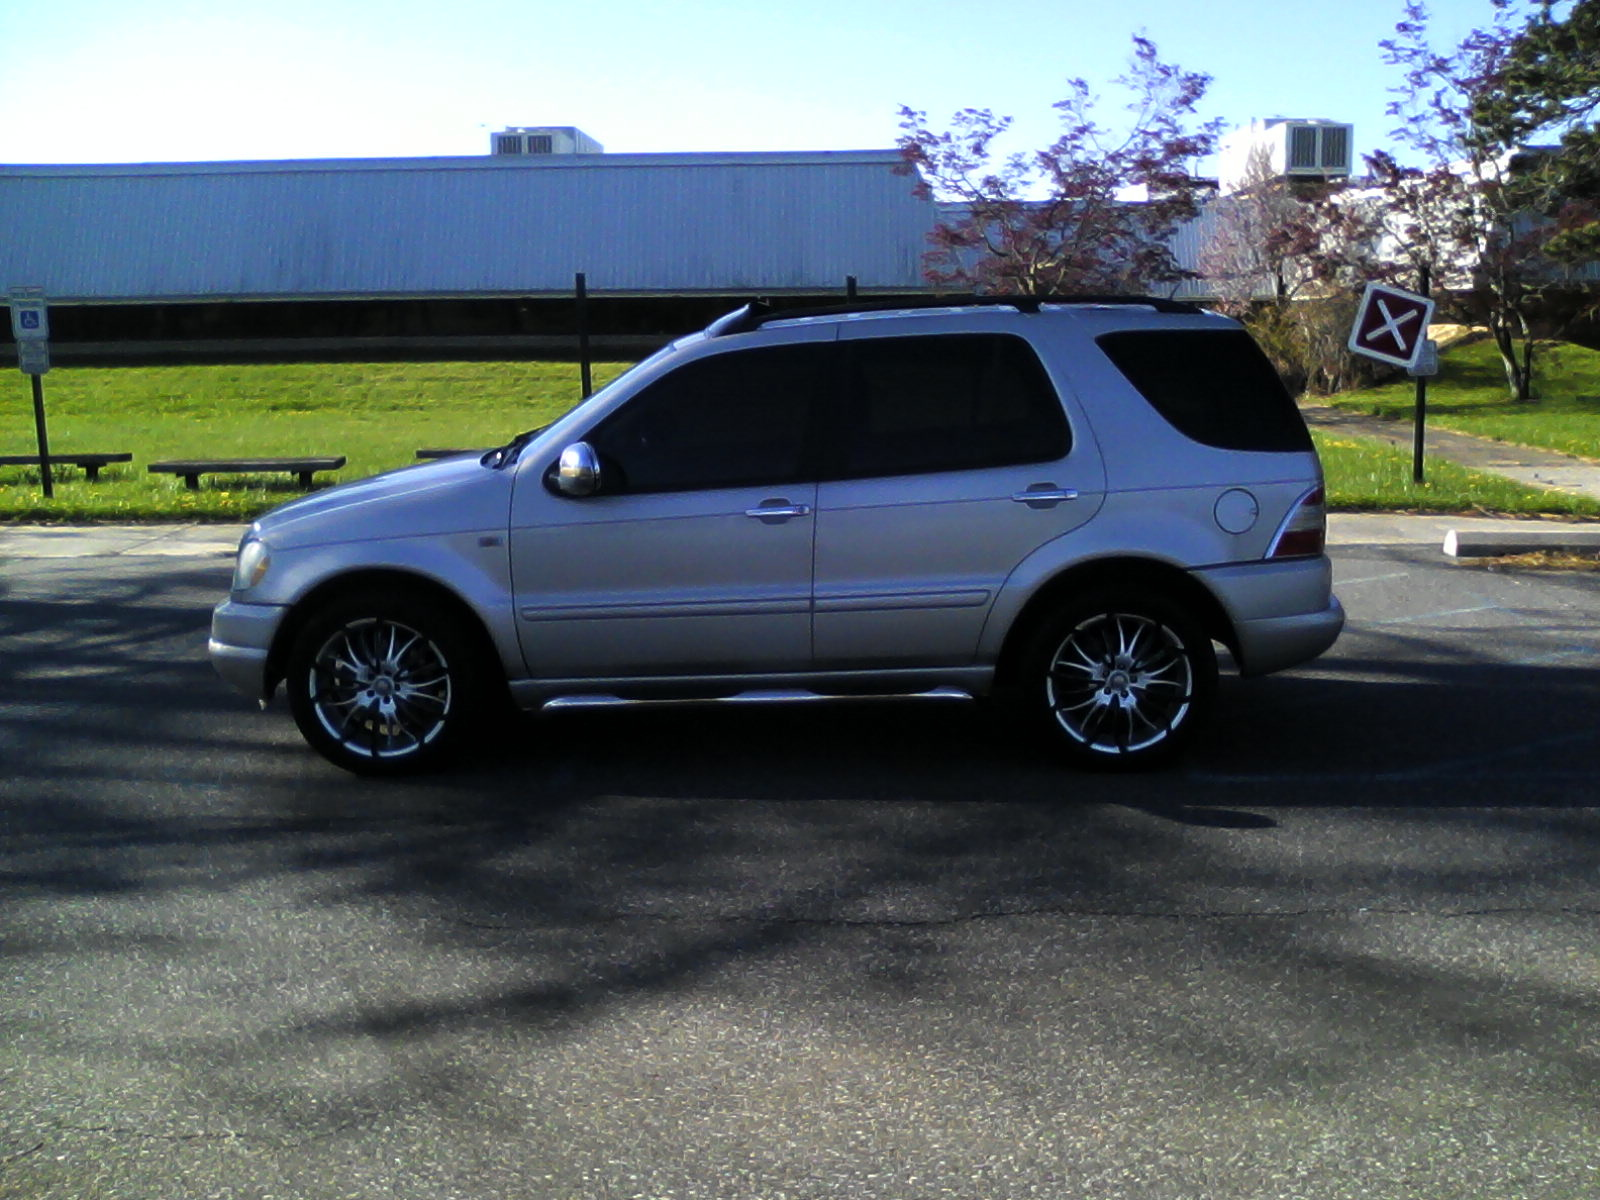 Picture of 2001 mercedes benz m class ml430 exterior for Mercedes benz ml430